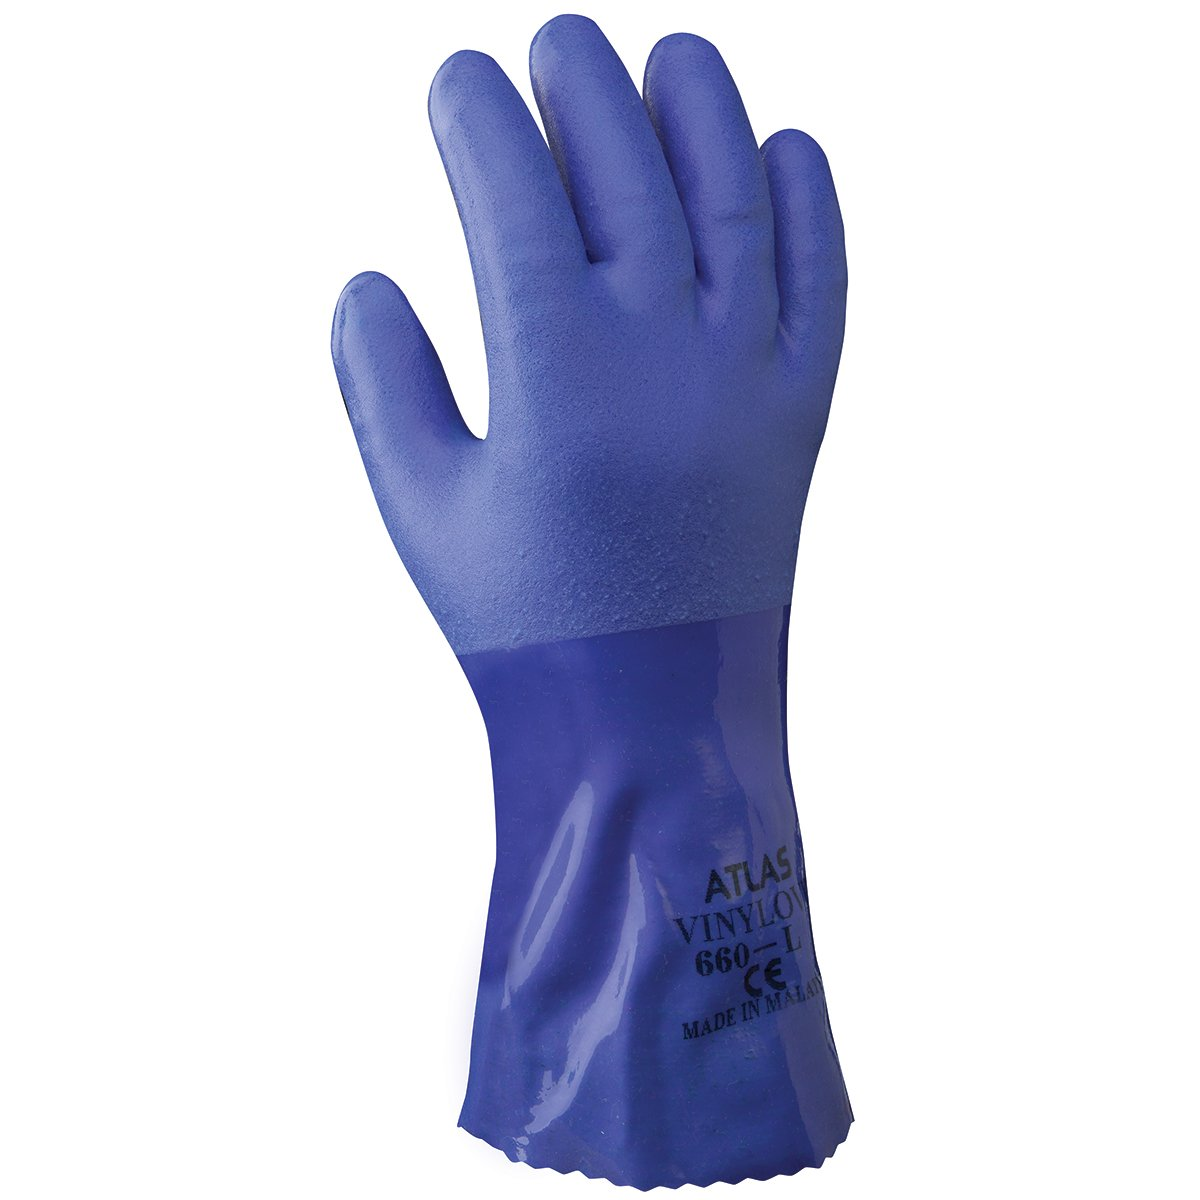 SHOWA Atlas 660XL-10 Triple-Dipped PVC Coated Glove with Cotton Liner, X-Large (Pack of 12 Pairs)